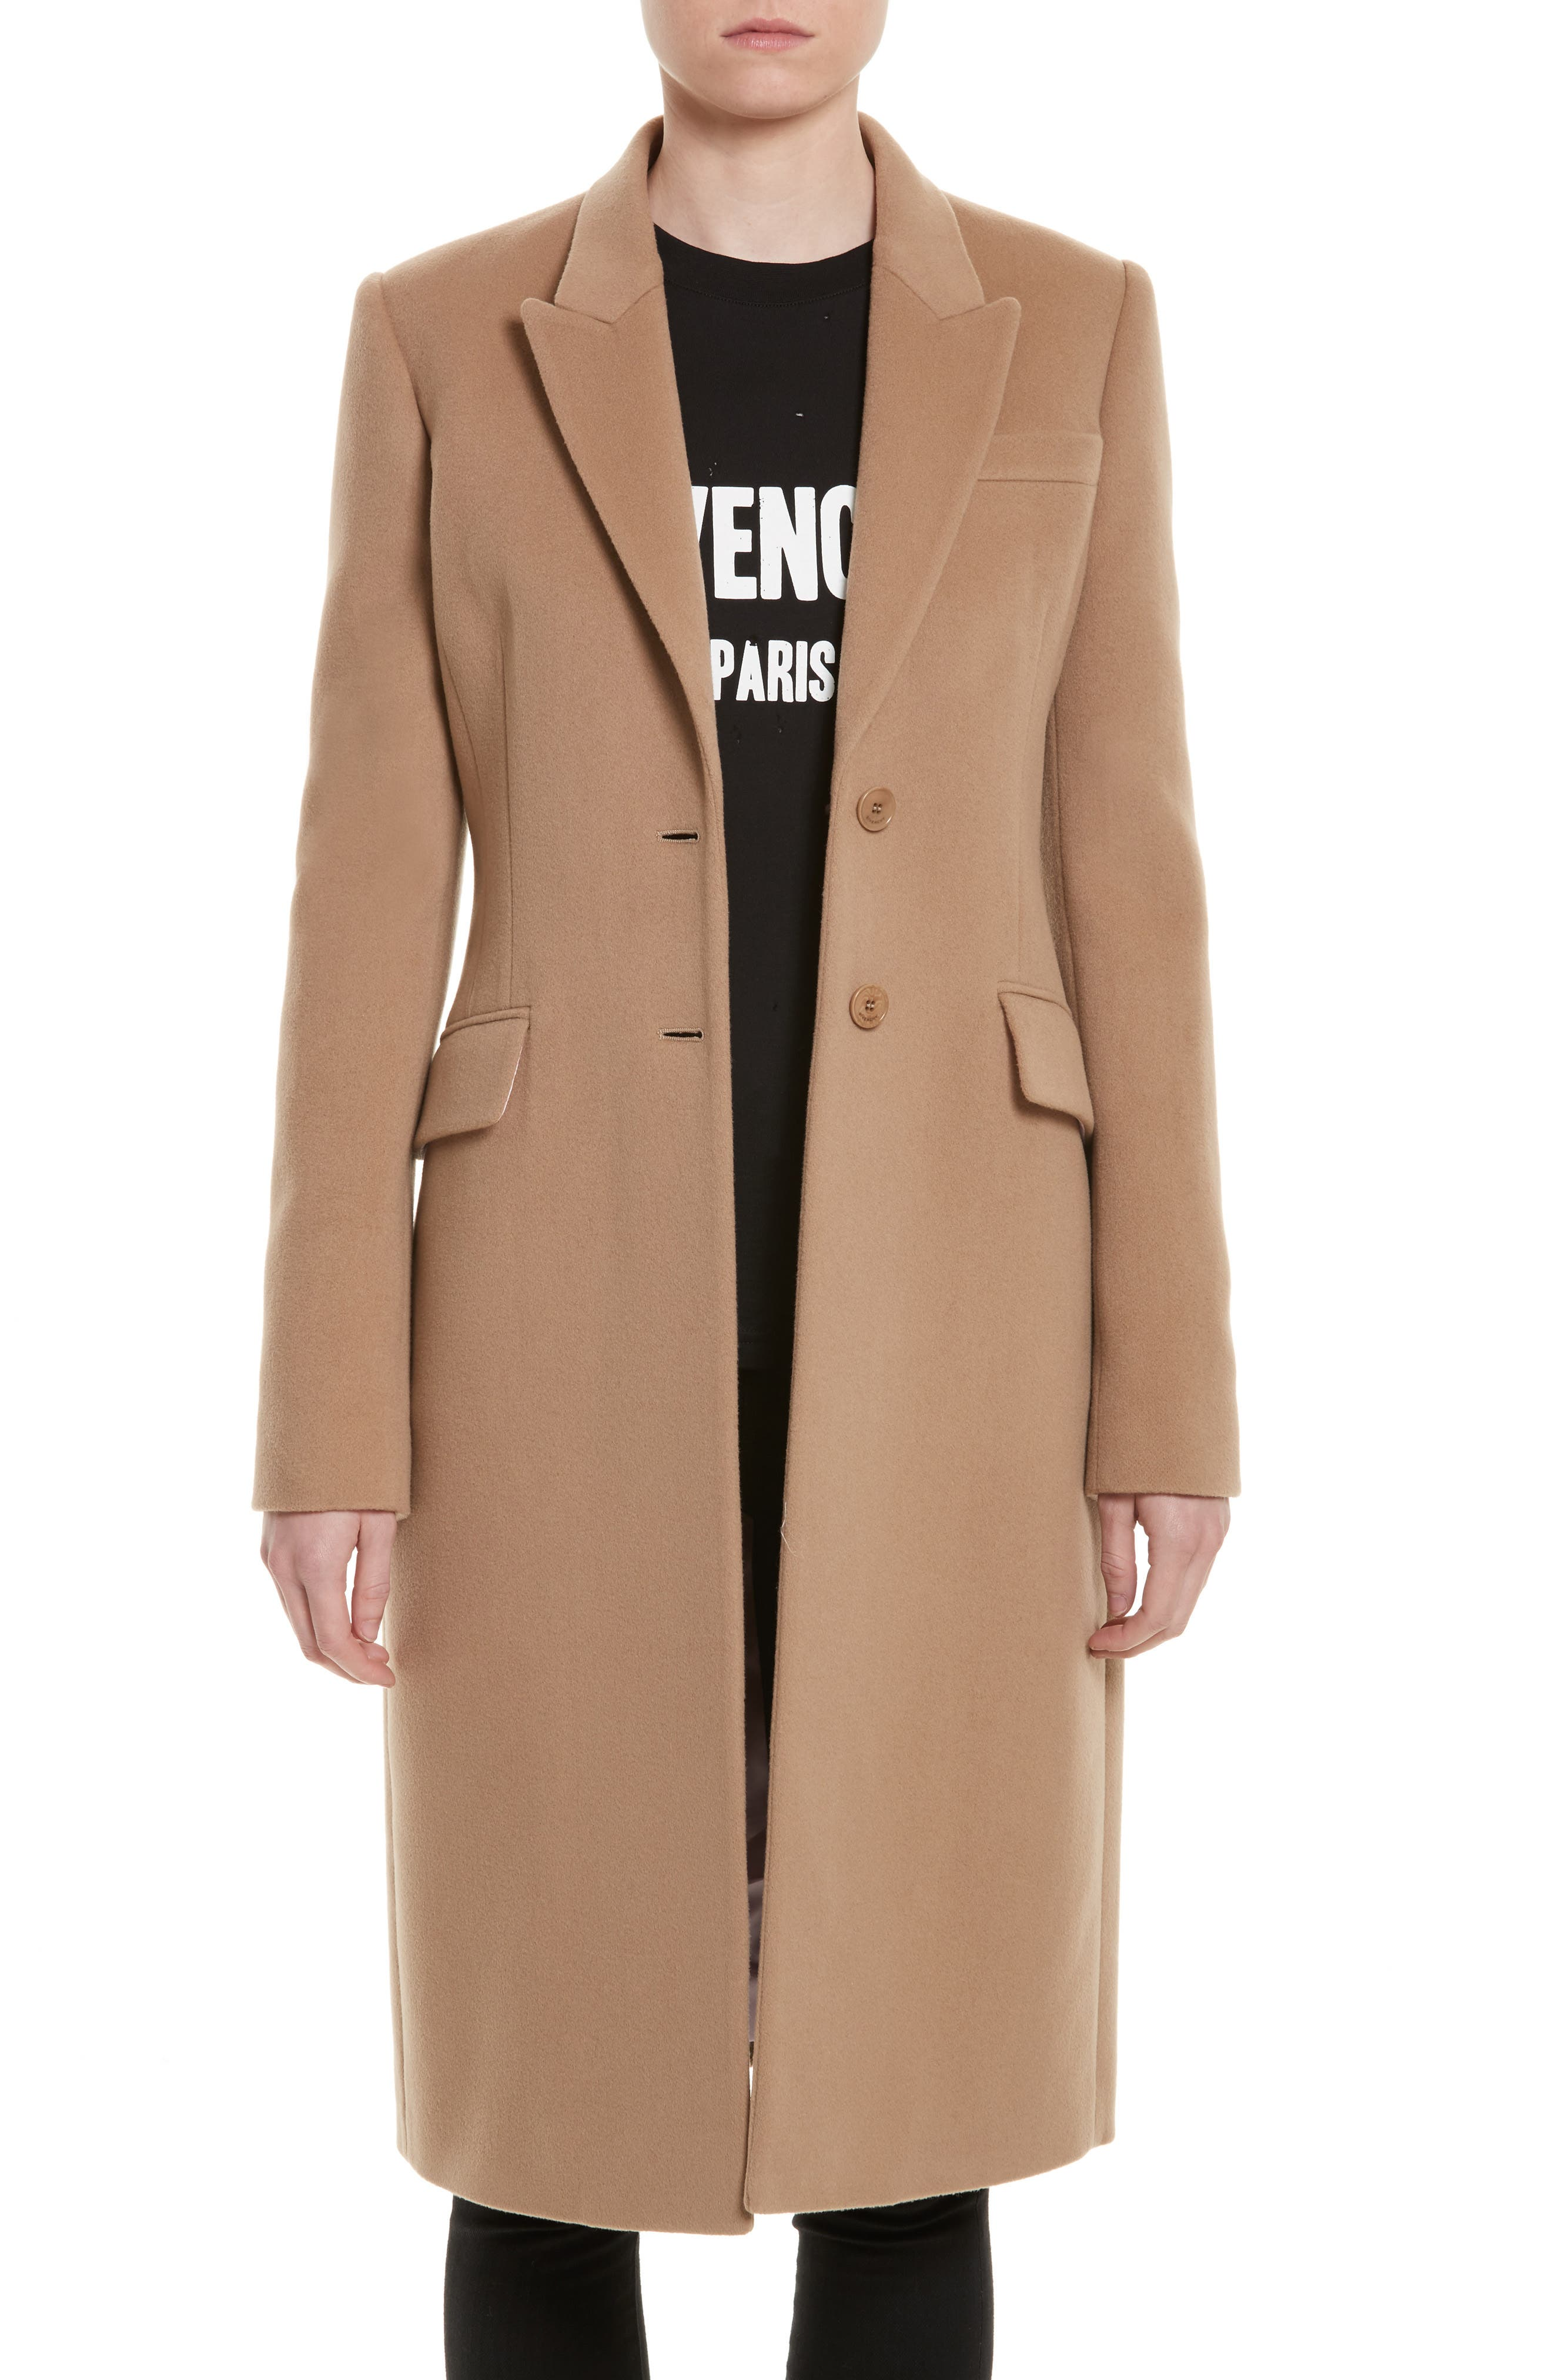 Givenchy Wool & Cashmere Coat